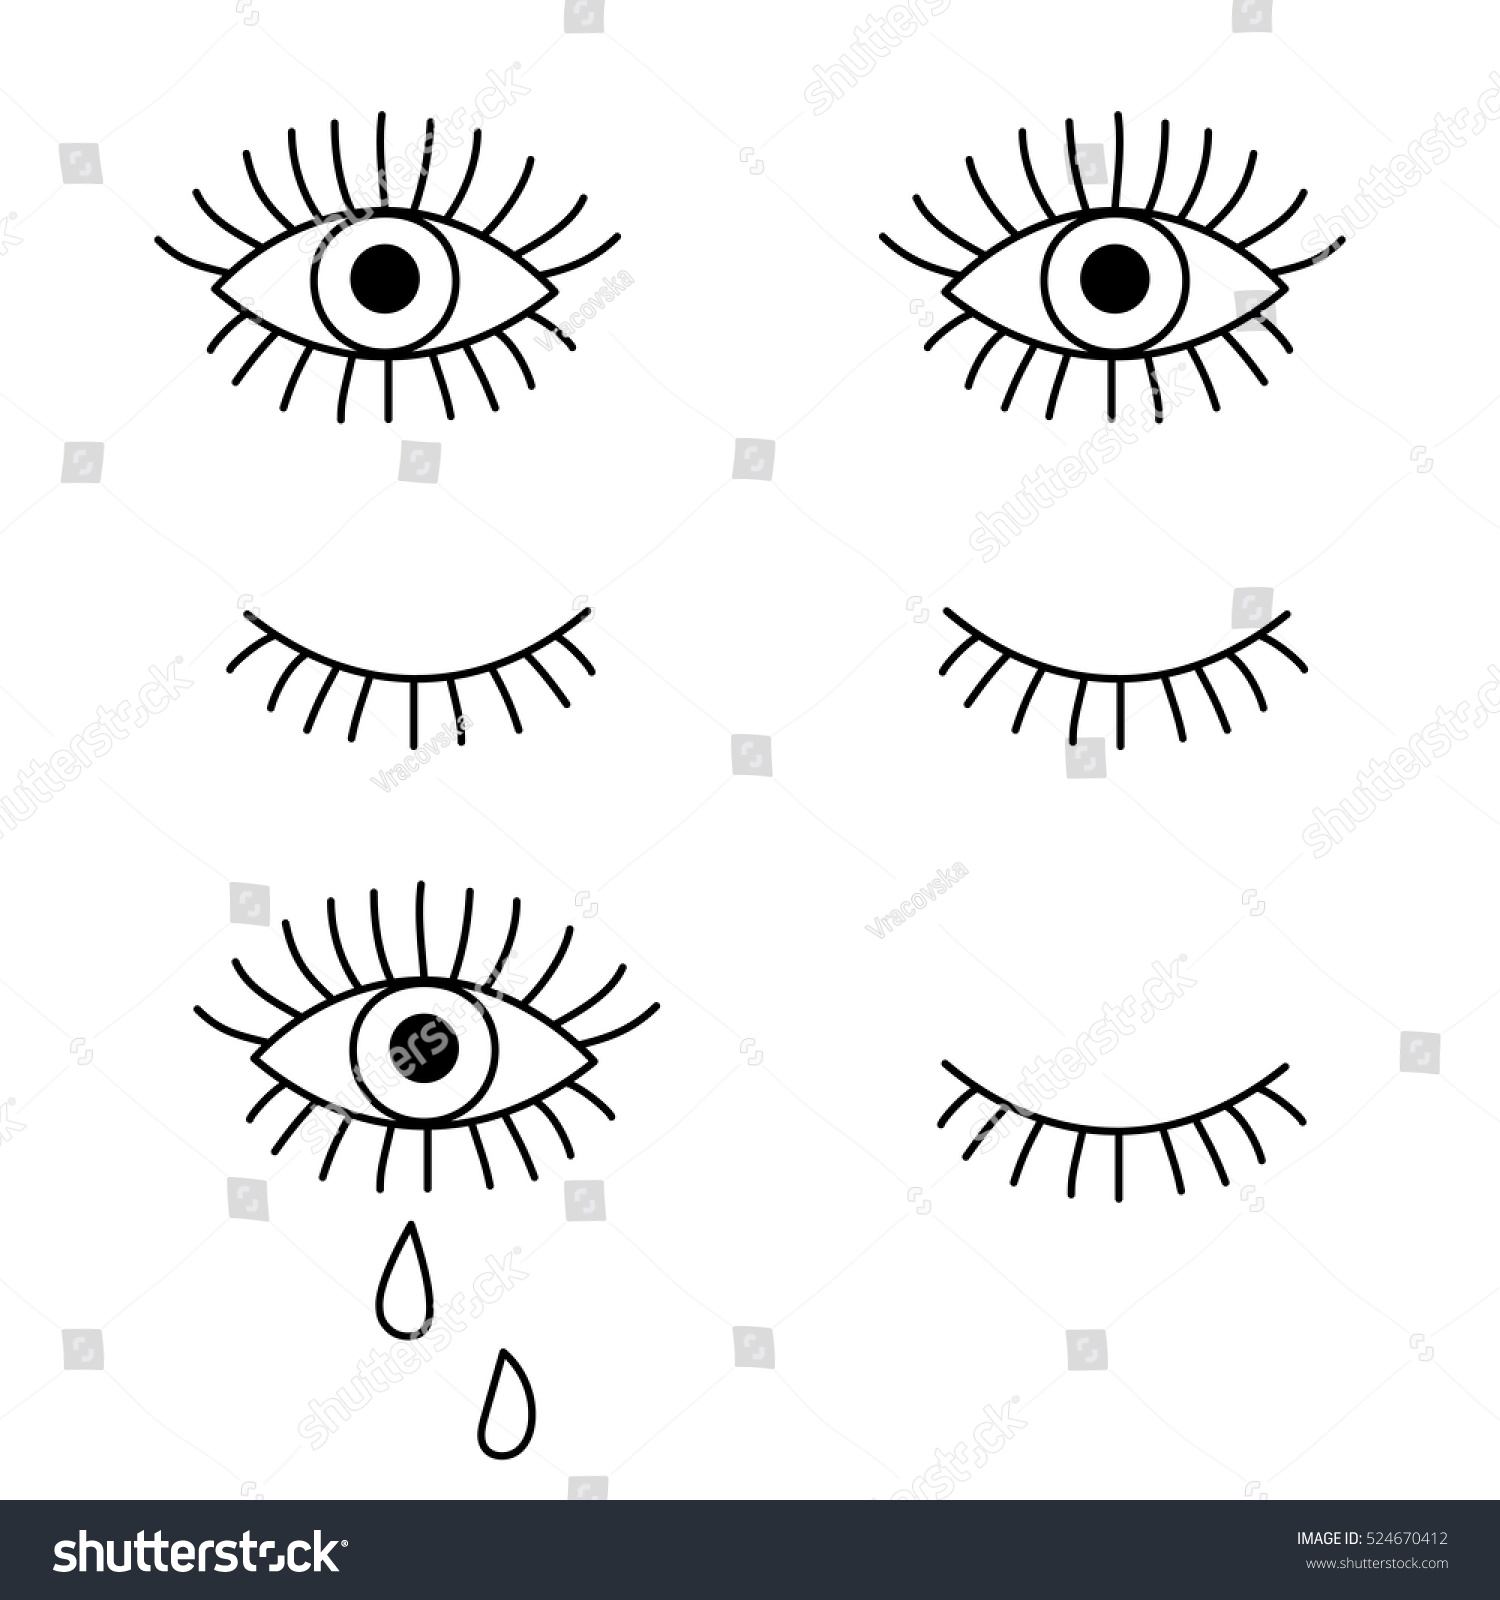 royalty free closed and open eye crying 524670412 stock photo